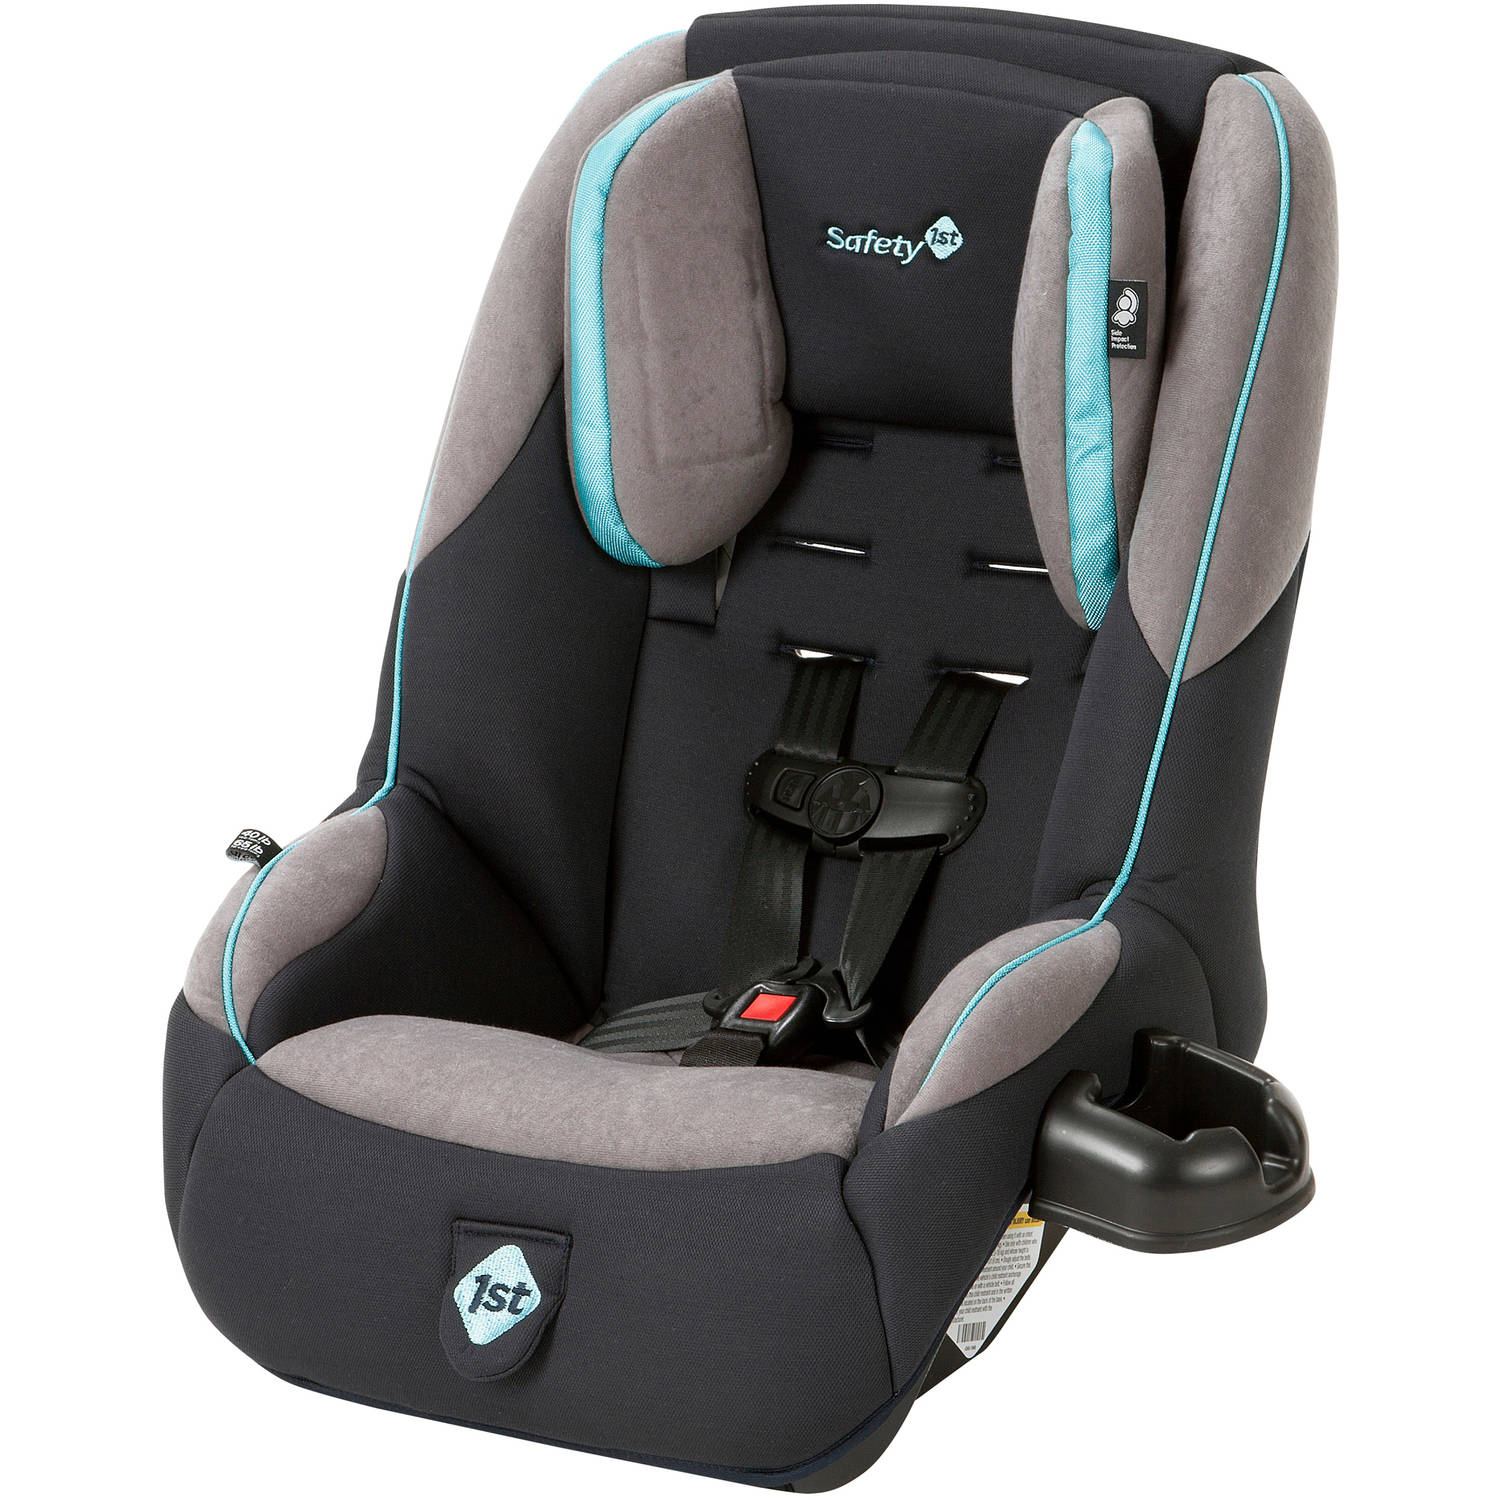 Safety 1st Guide 65 Sport Convertible Car Seat, Oceanside